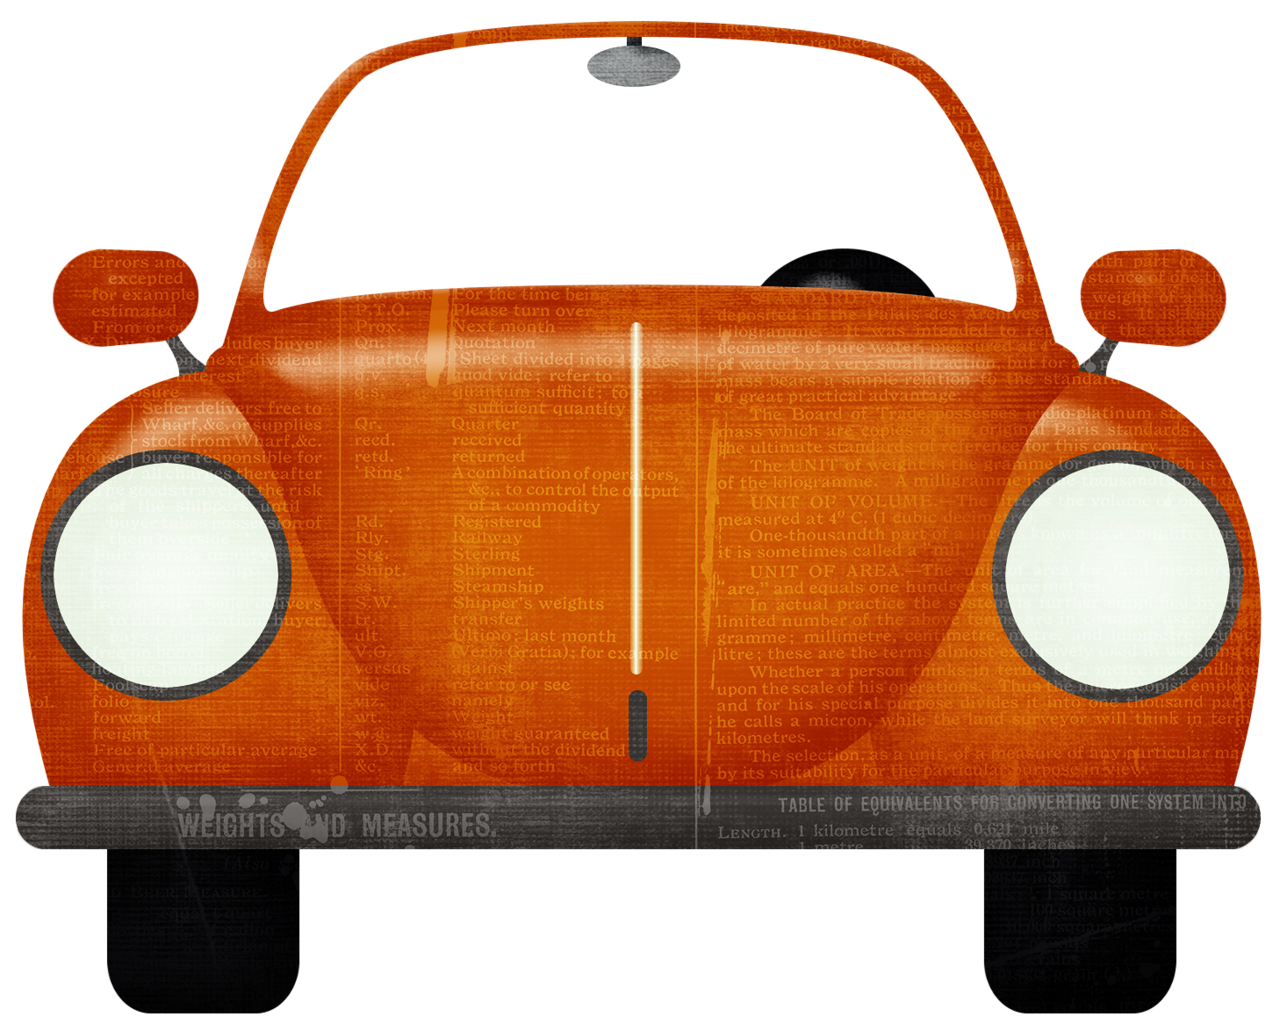 Clipart cars candy. Patiaraujo oldiscool elements png